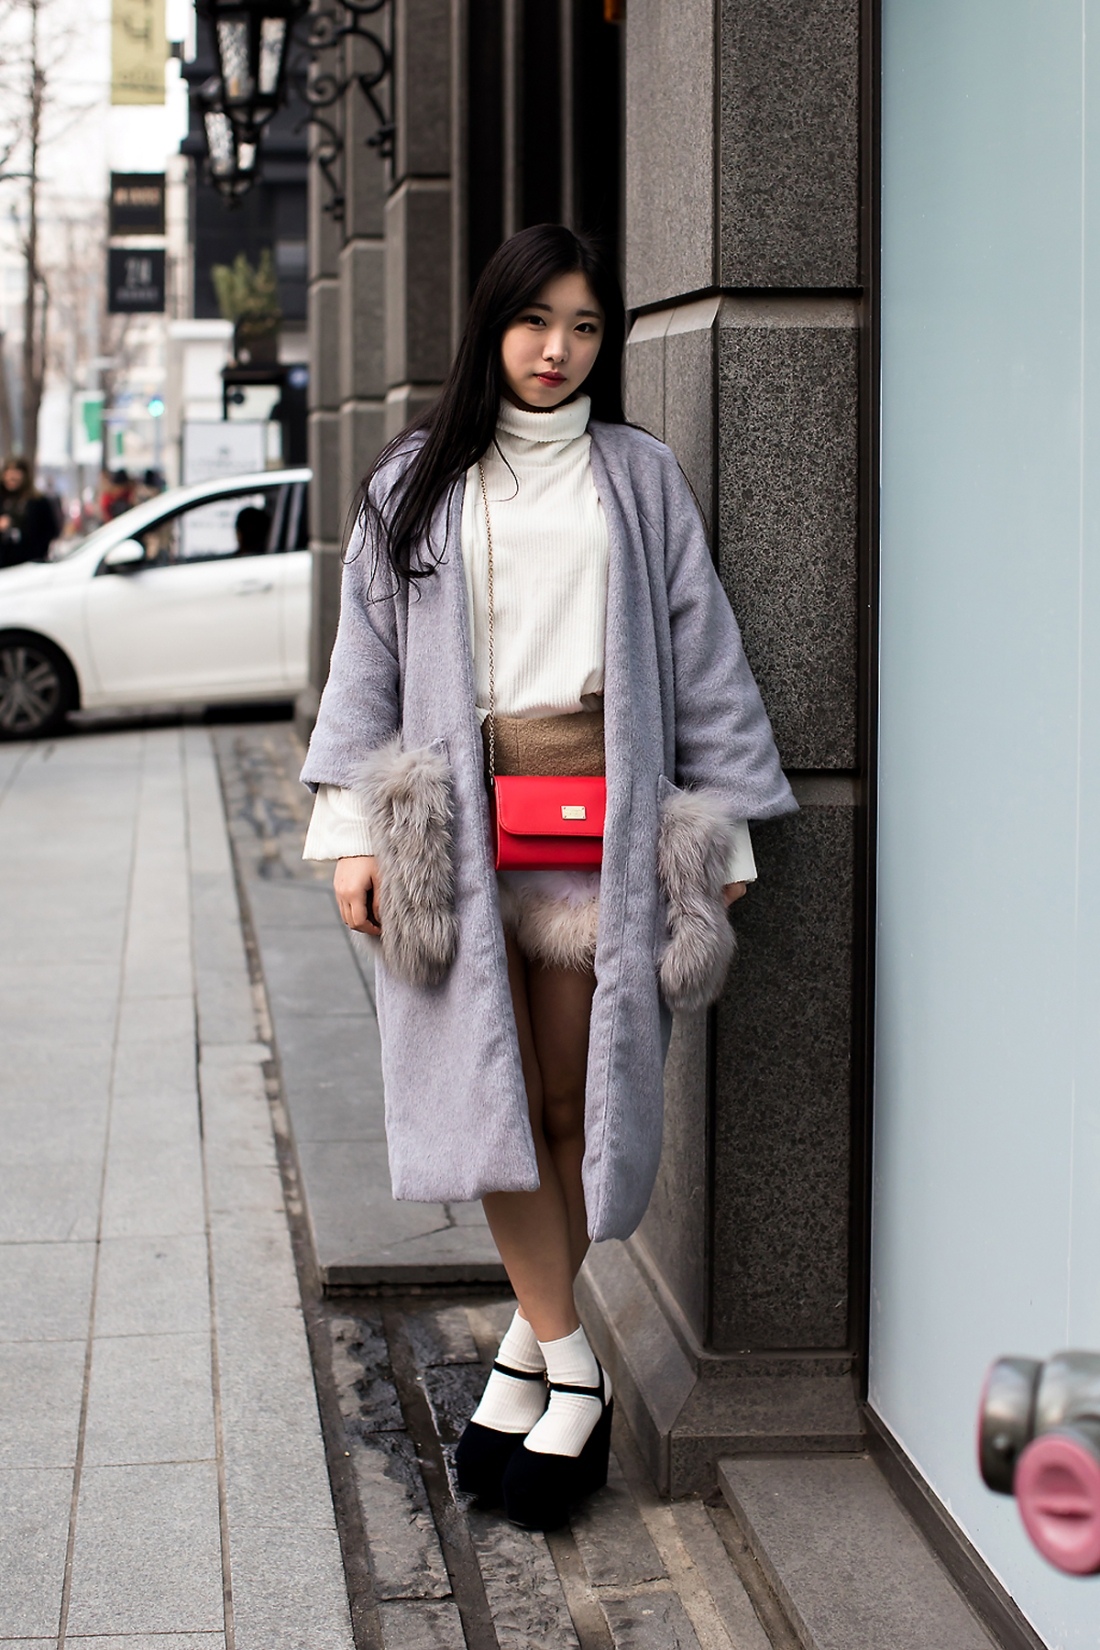 Sara, Street Fashion 2017 in SEOUL.jpg